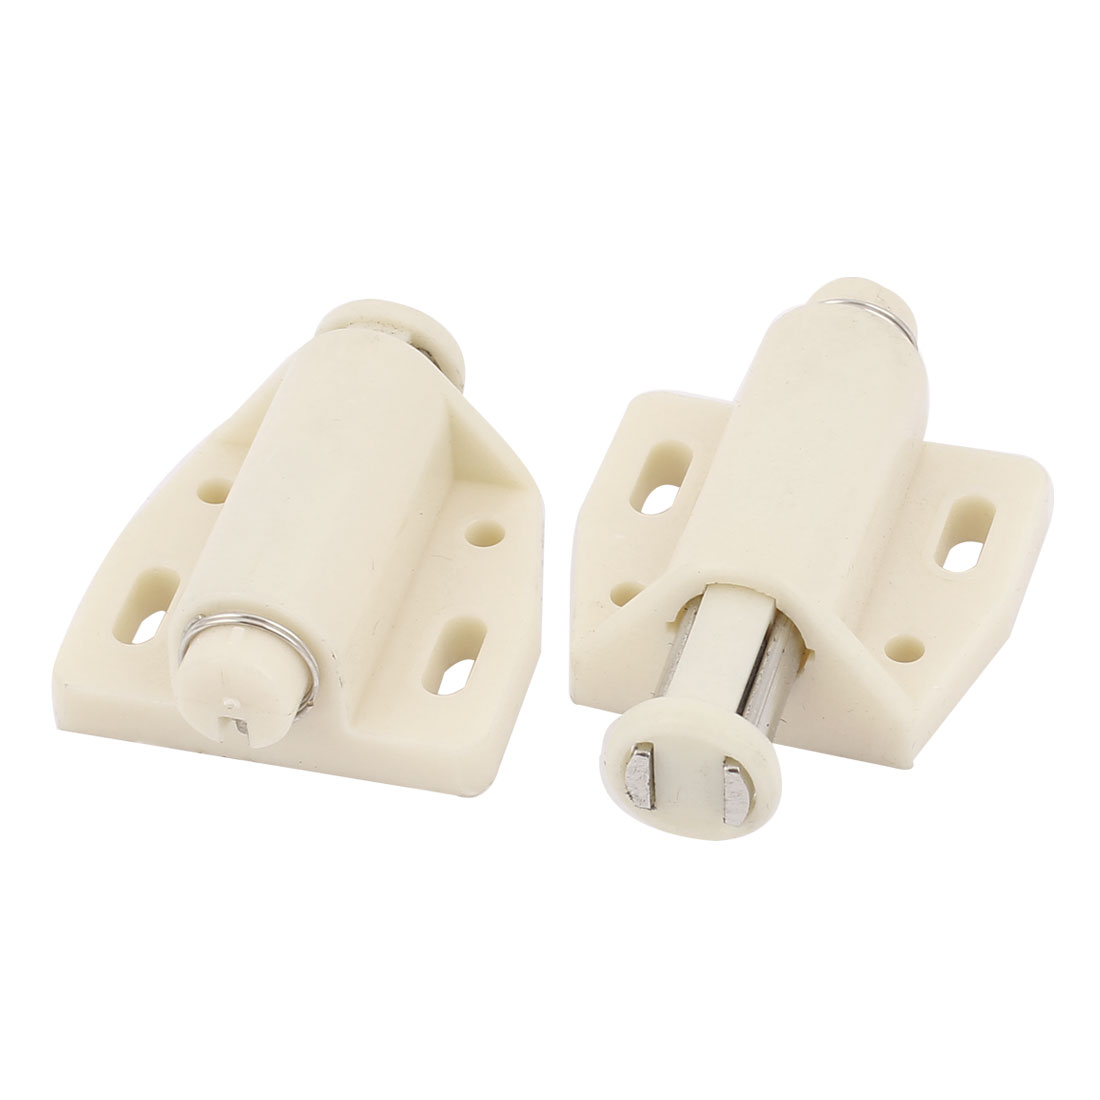 Cabinet Door Drawer Push To Open Magnetic Catch Touch Latch 2pcs